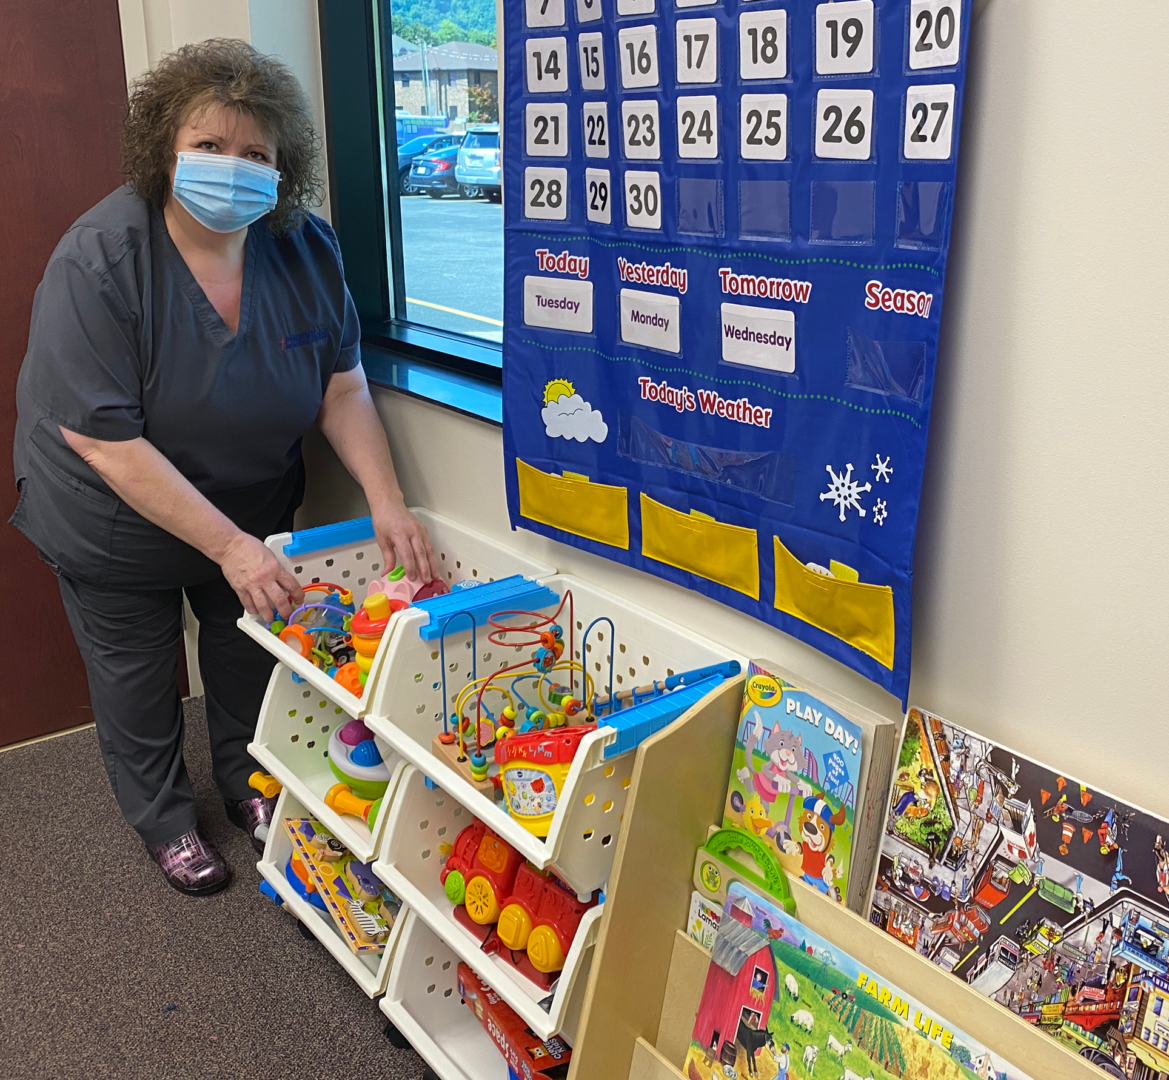 Staff Member setting up room with games and toys